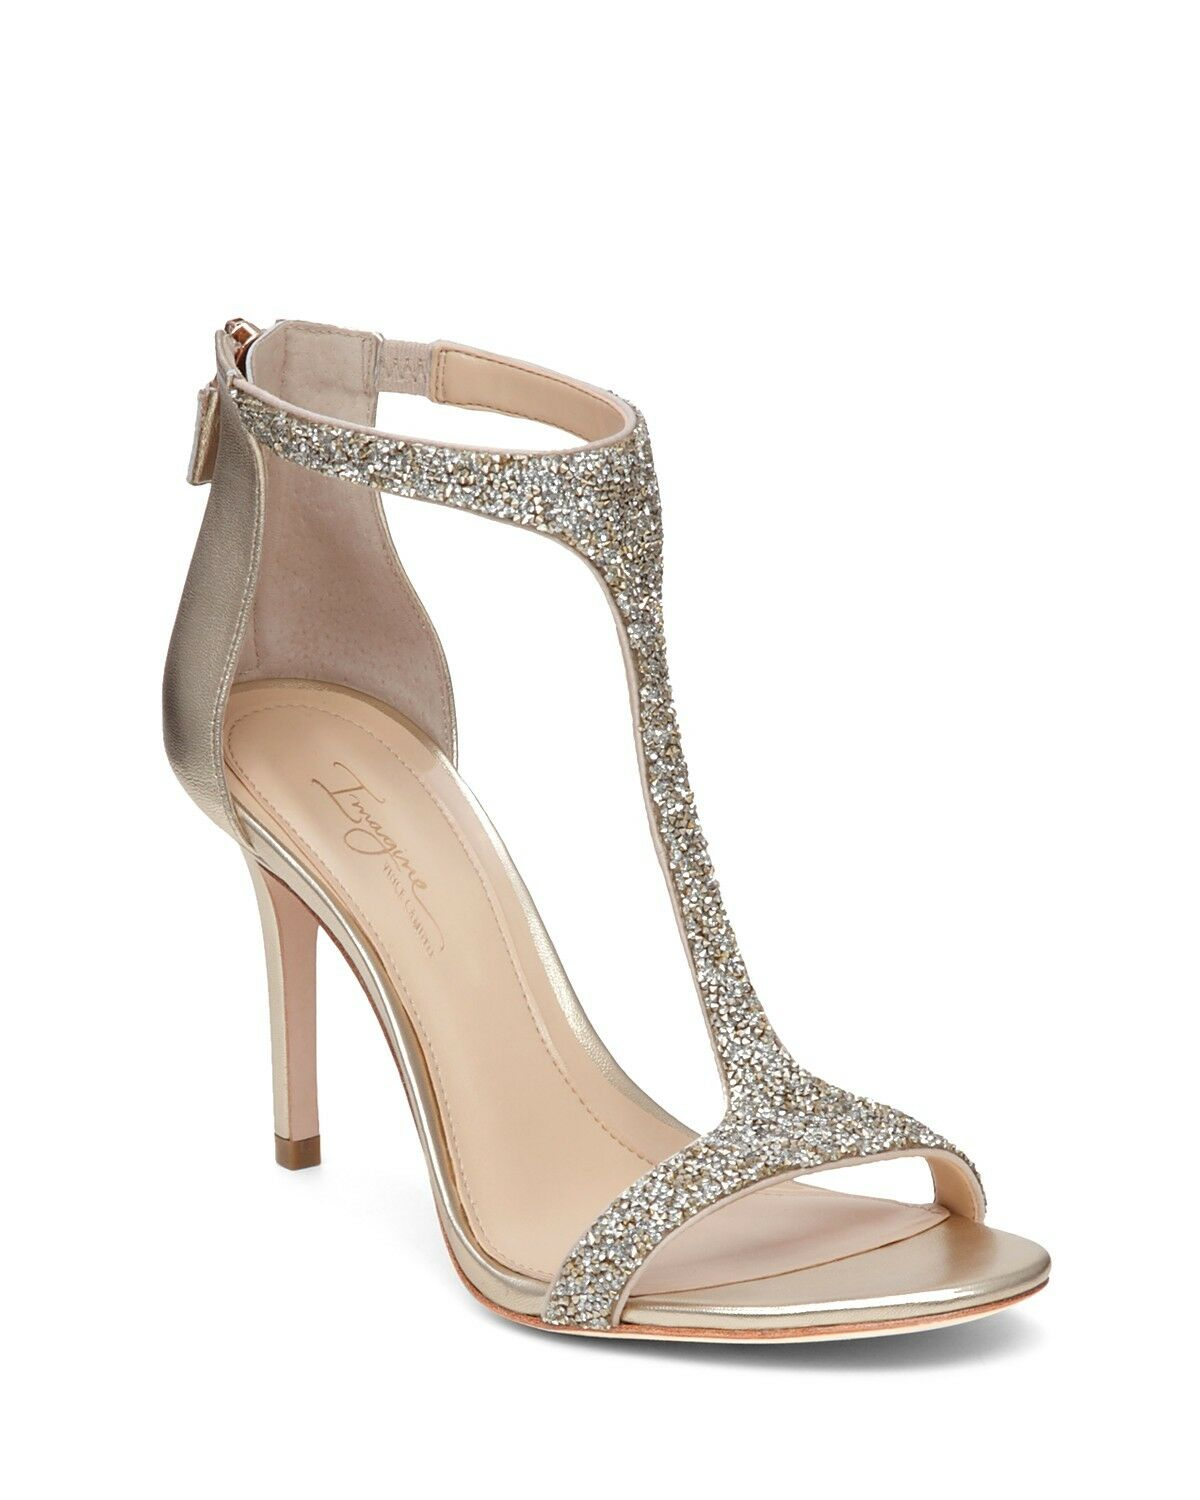 NEW Imagine by Vince Camuto Phoebe T-Strap Sandals 9 M Iridescent